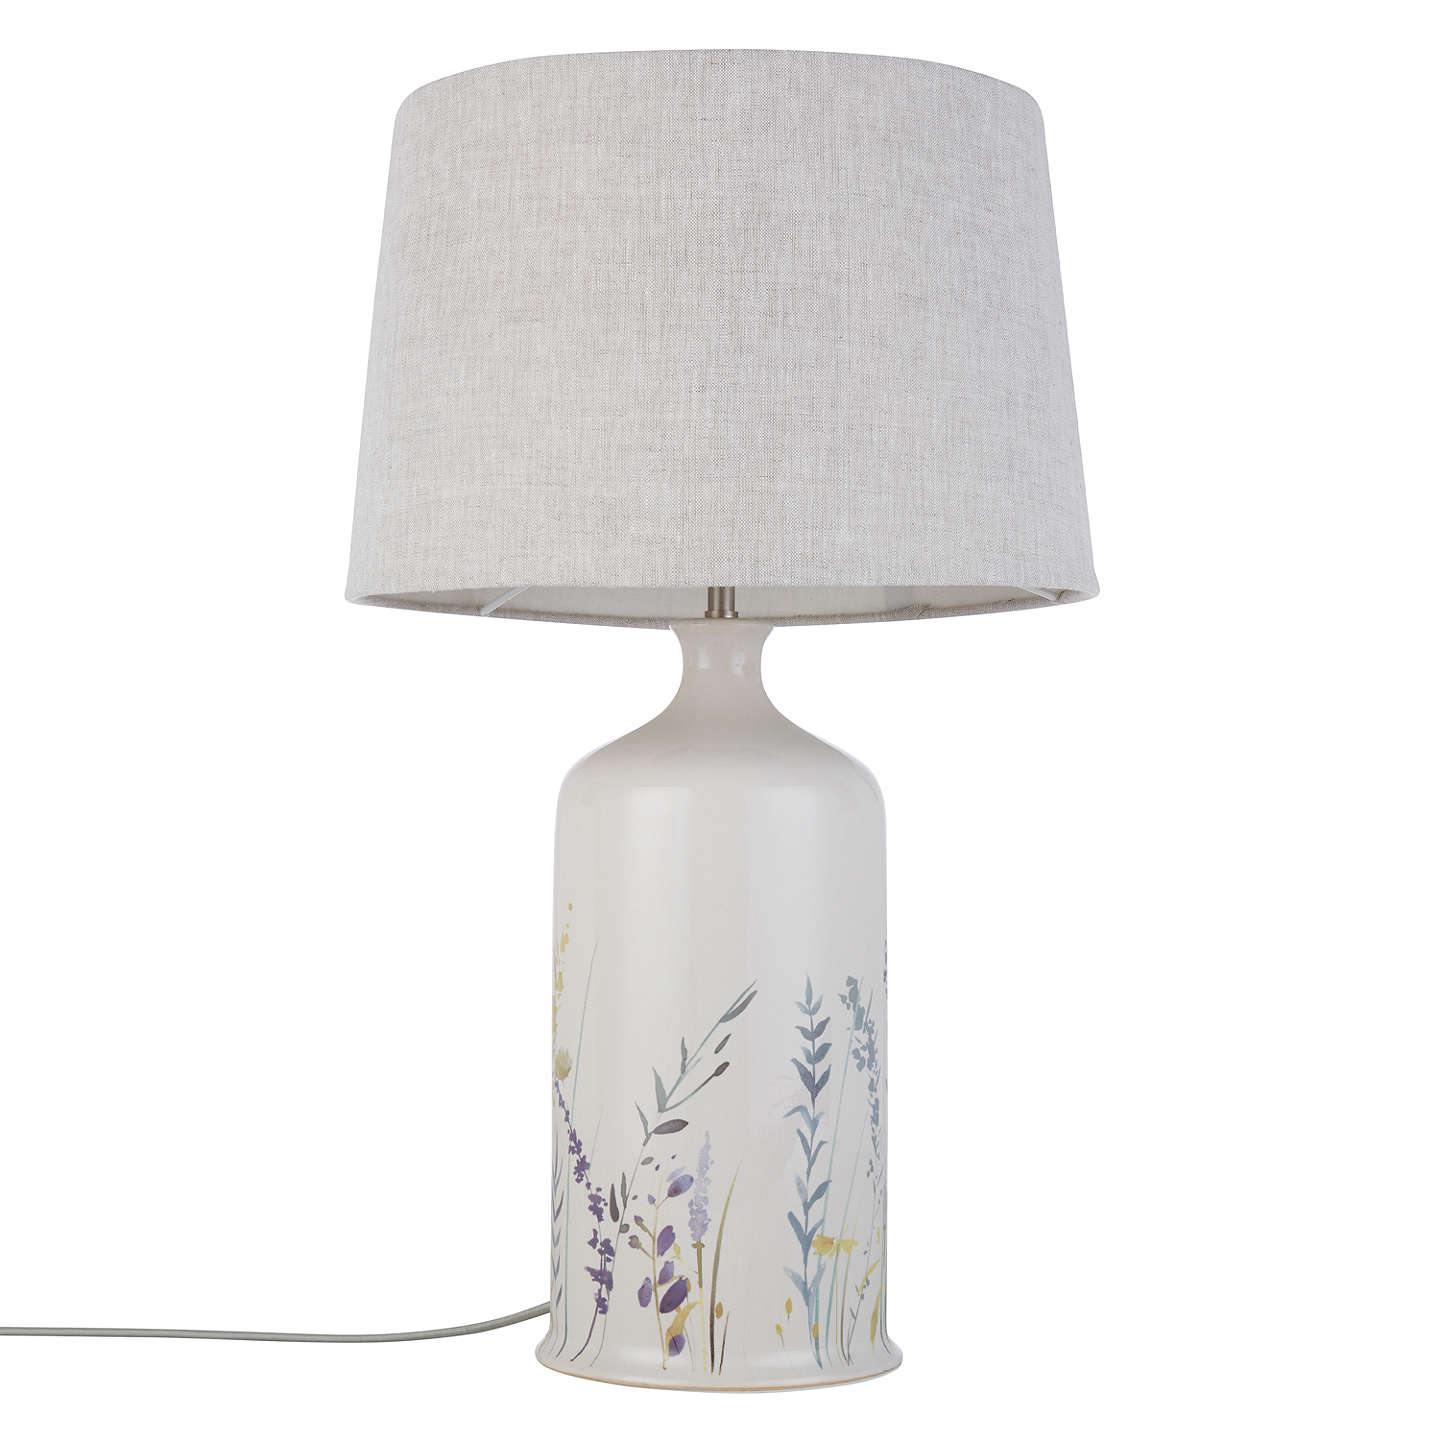 John lewis leckford print crackle table lamp at john lewis buyjohn lewis leckford print crackle table lamp online at johnlewis mozeypictures Images